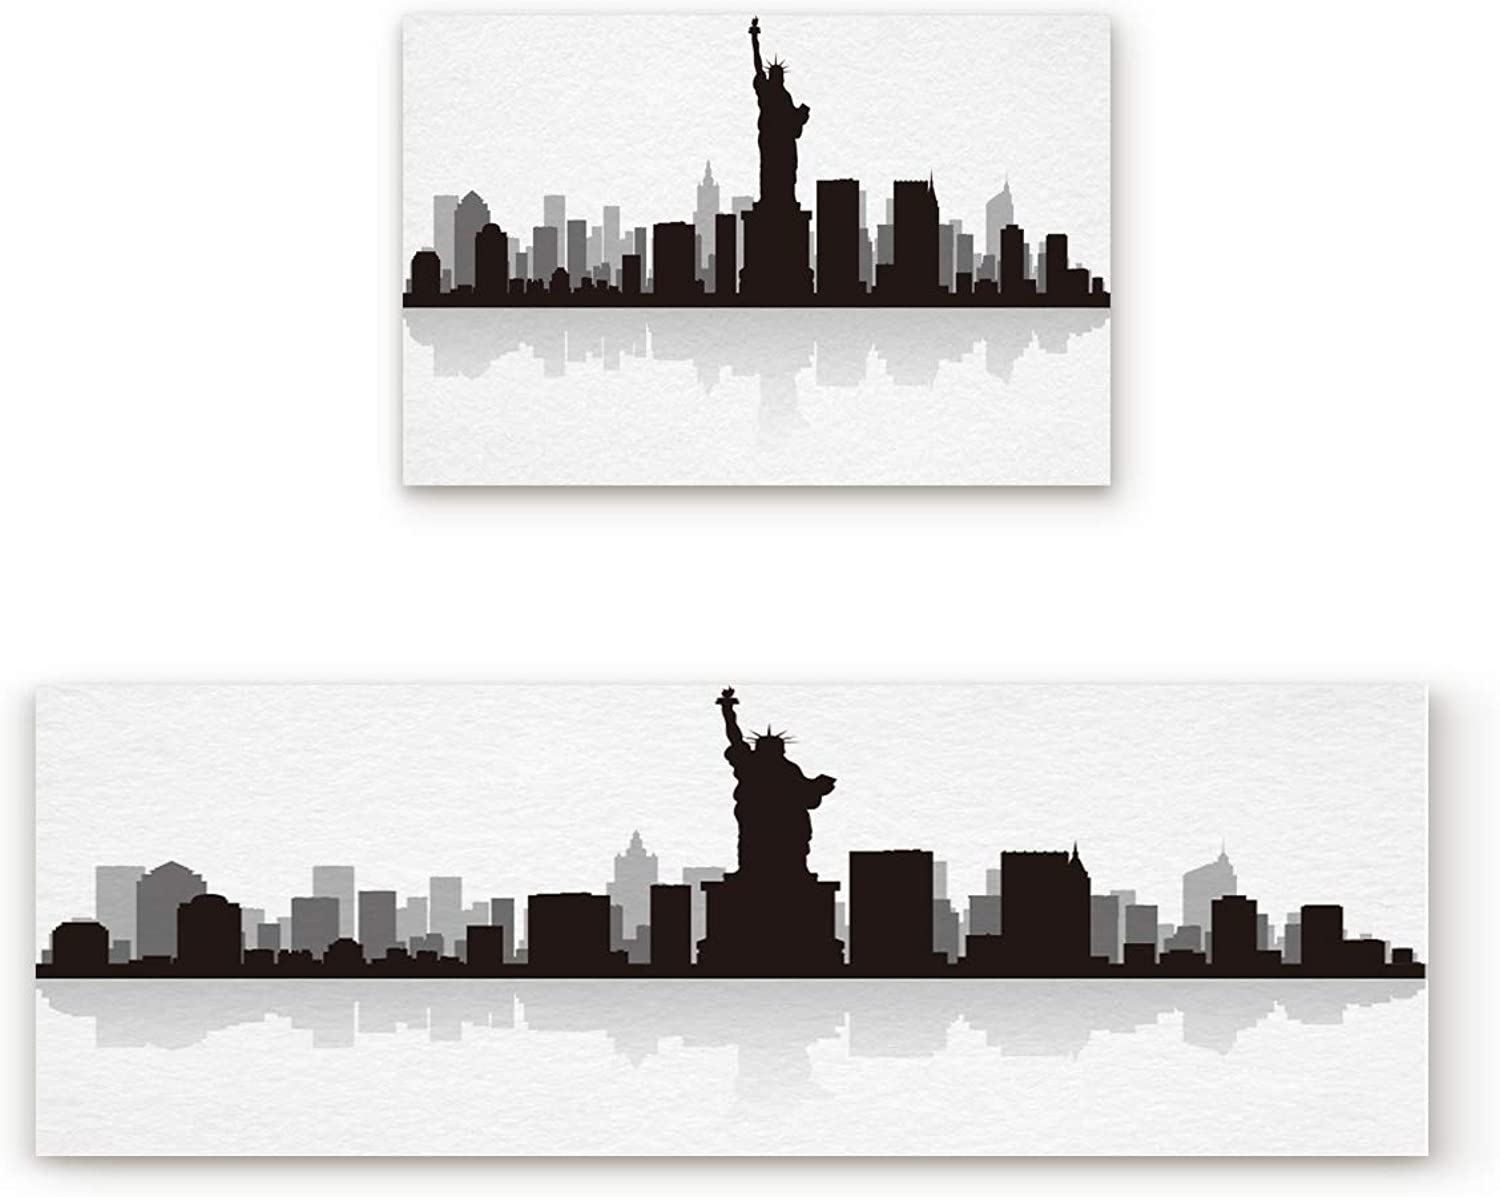 Findamy Non-Slip Indoor Door Mat Entrance Rug Rectangle Absorbent Moisture Floor Carpet for Statue of Liberty in Black Silhouette Doormat 23.6x35.4In+23.6x70.9In